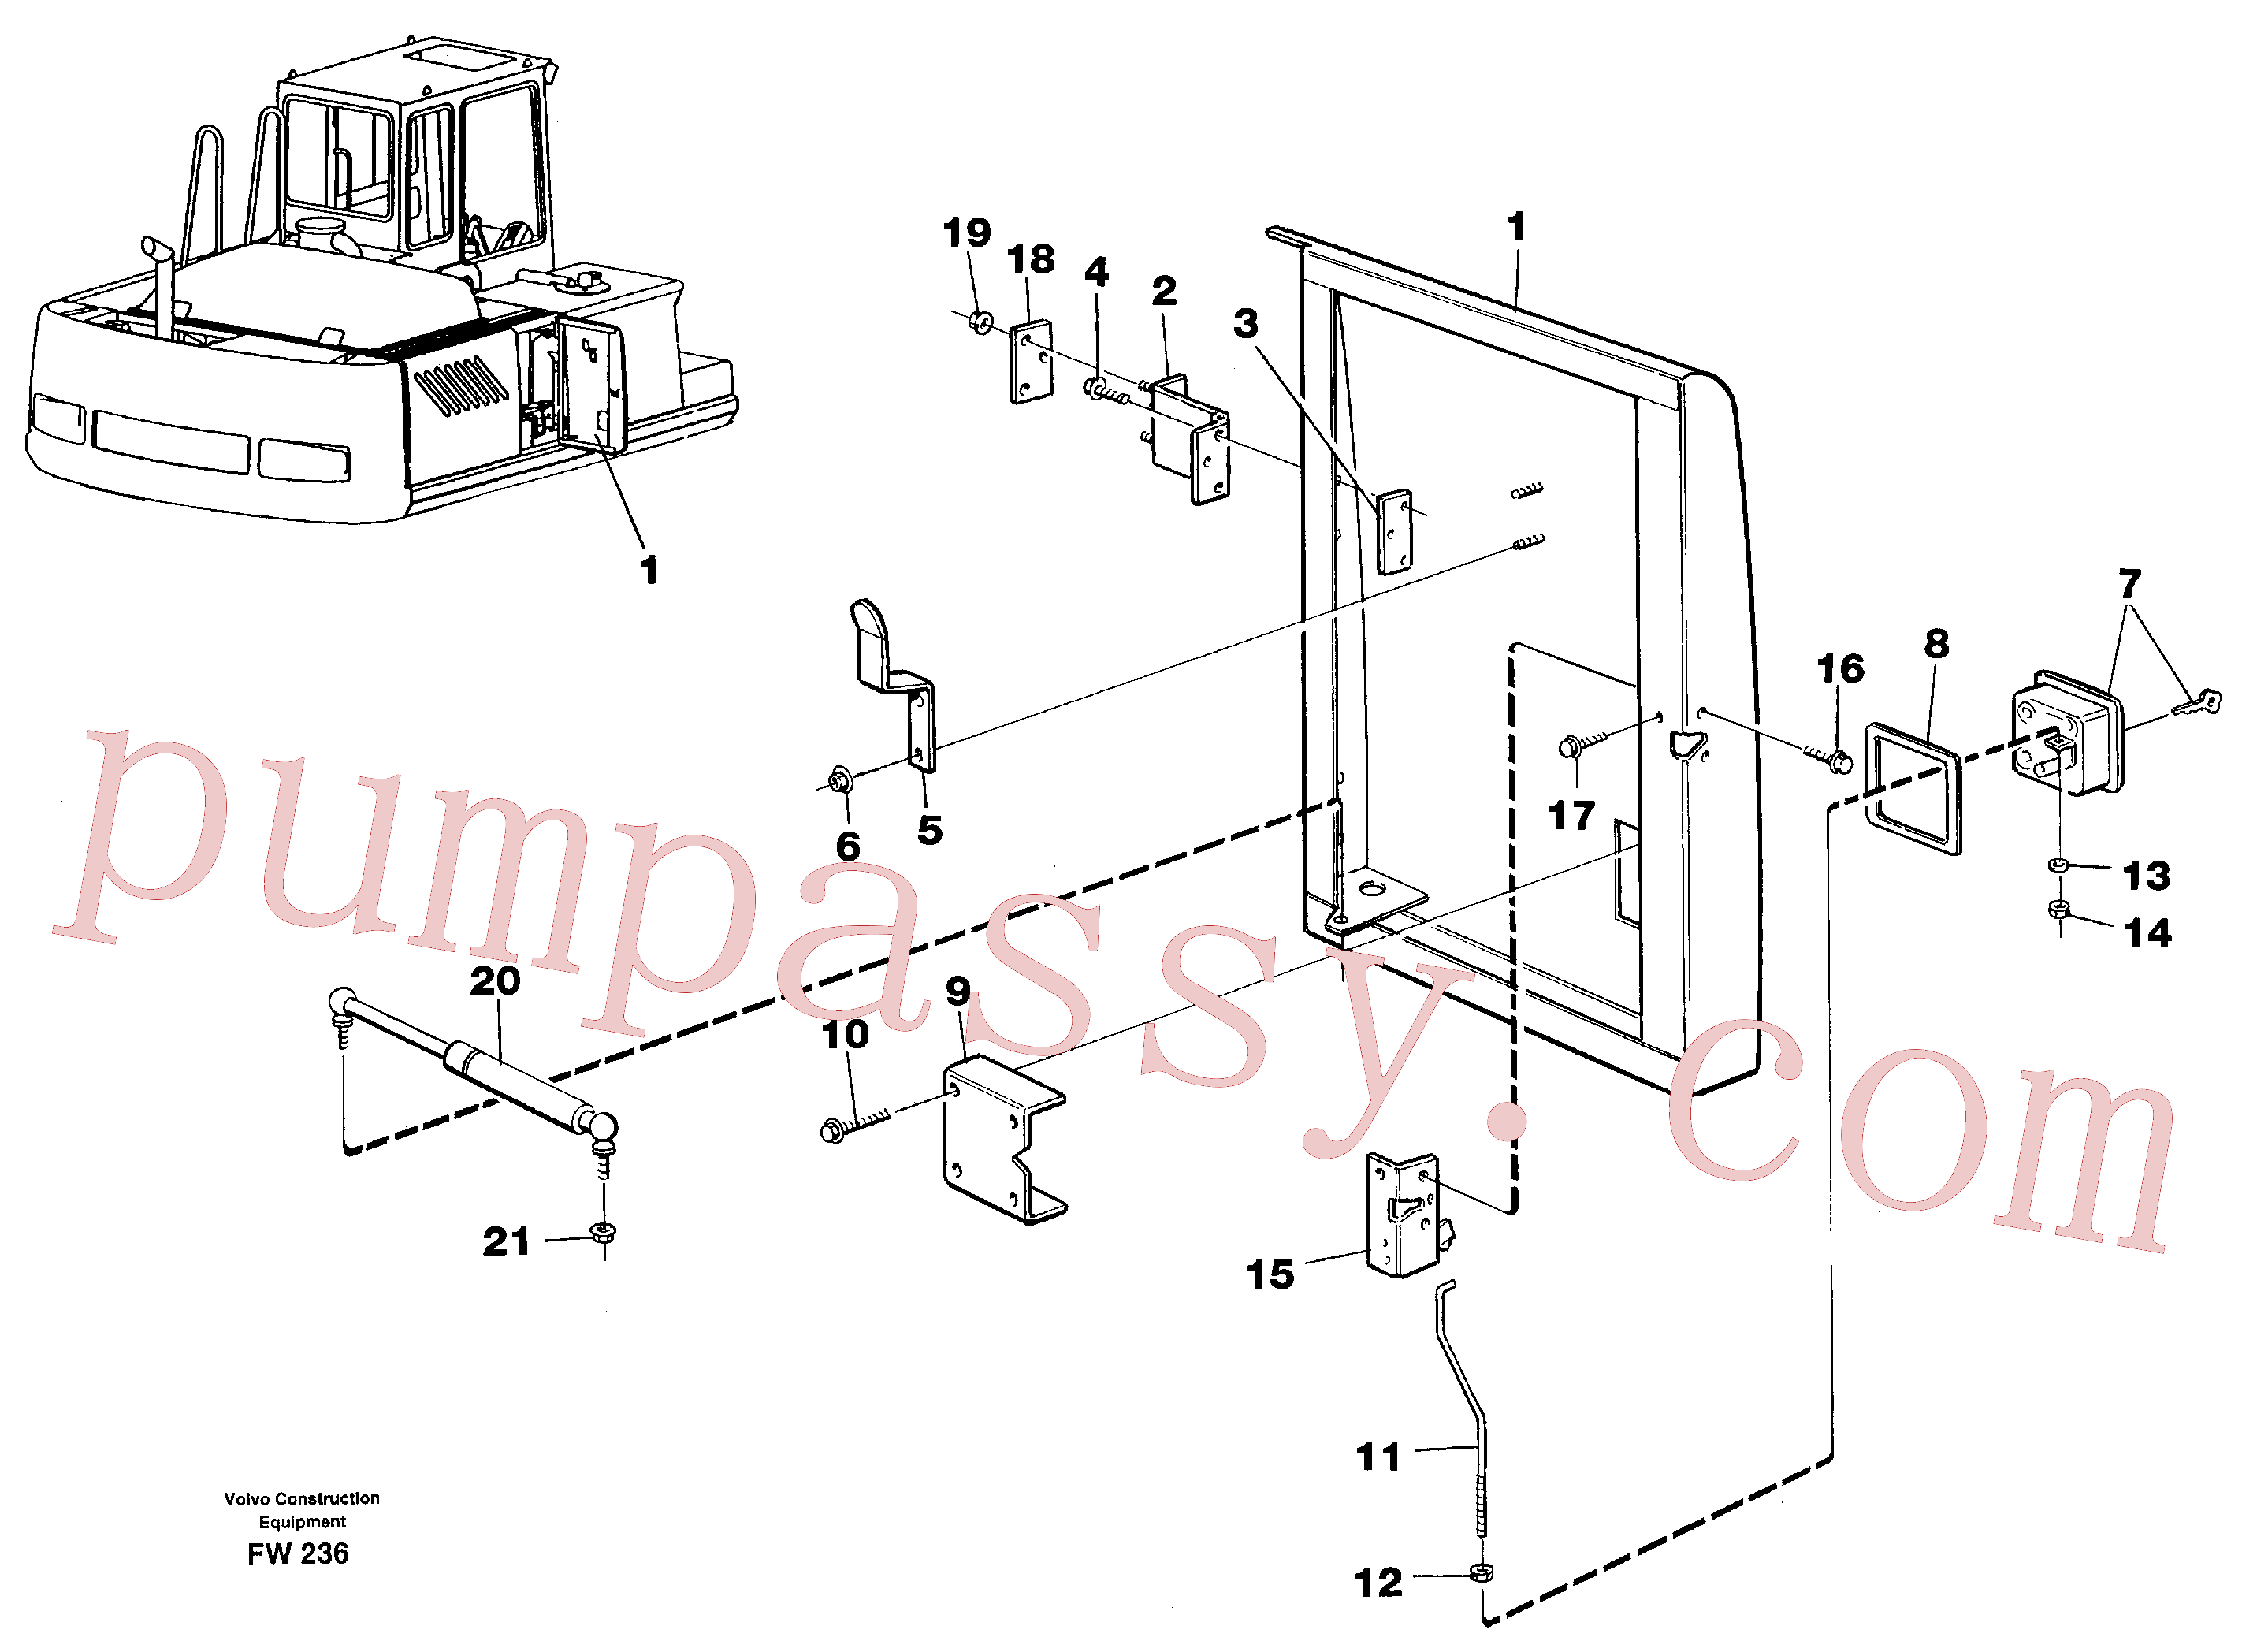 VOE971319 for Volvo Door, centre, right(FW236 assembly)